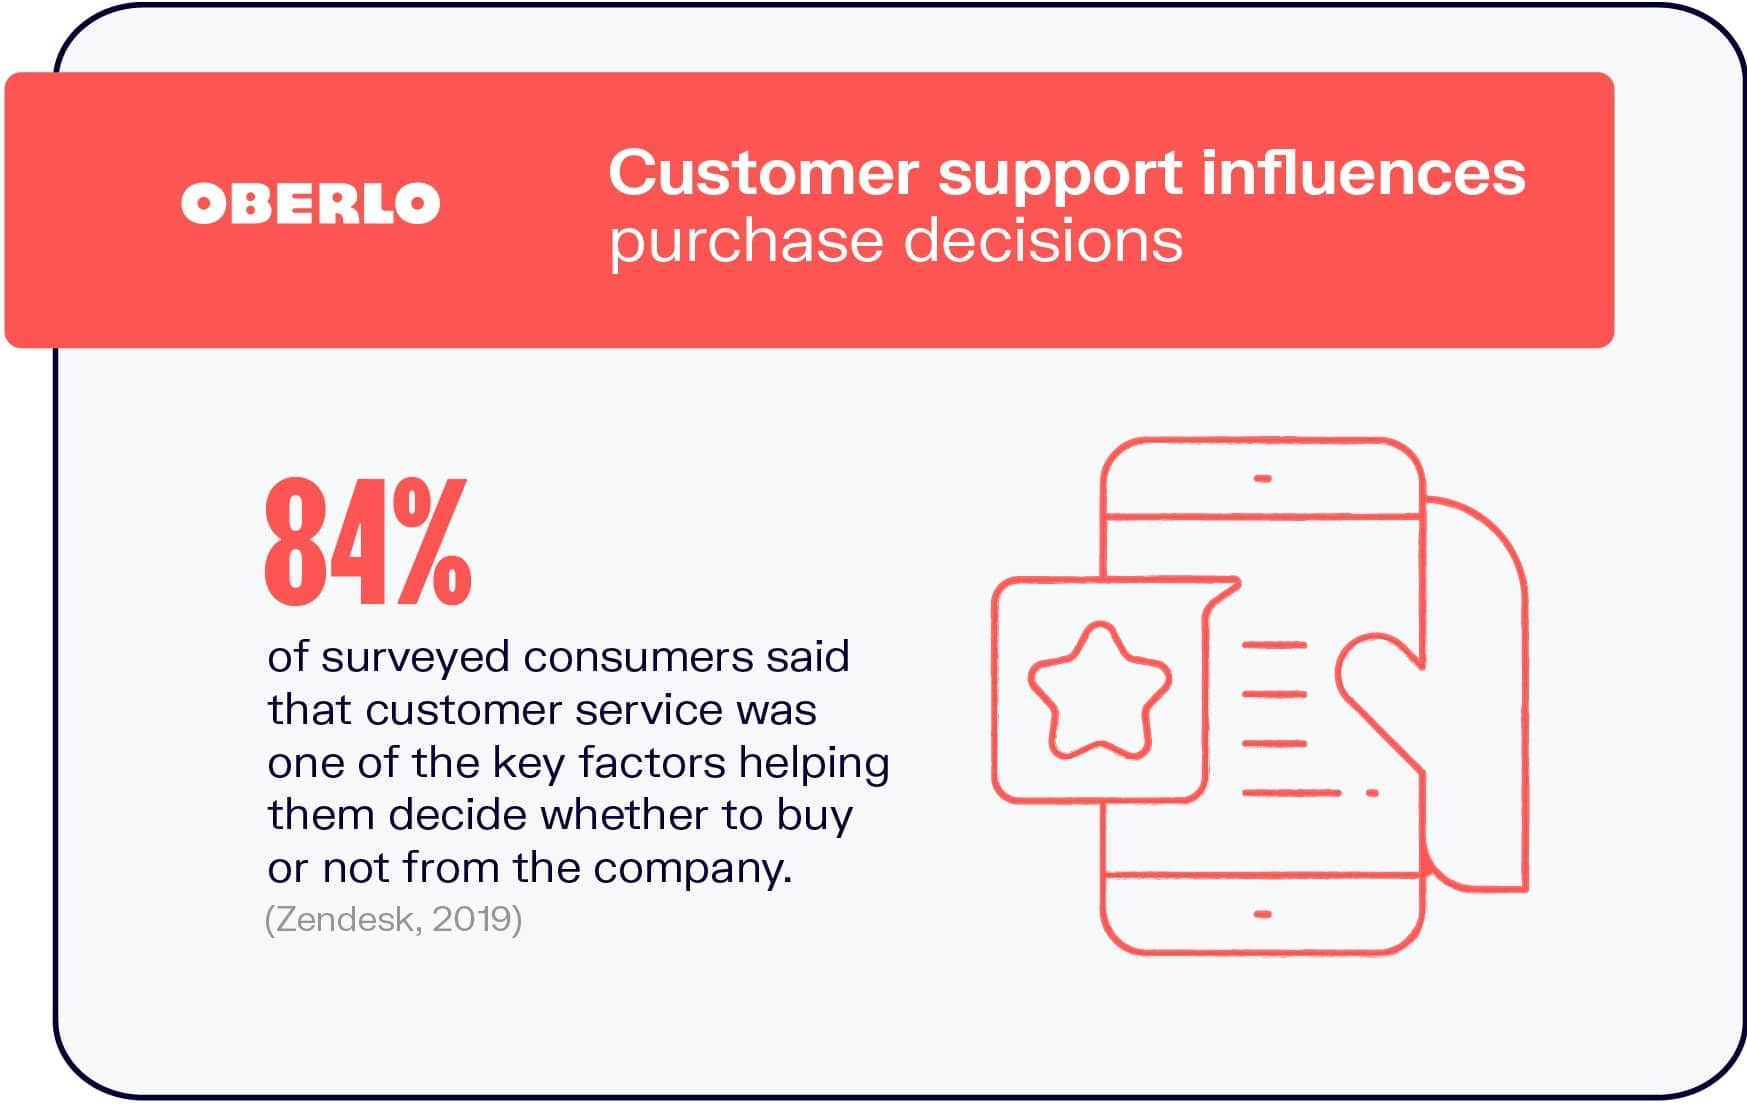 Customer Service Influences Purchase Decisions